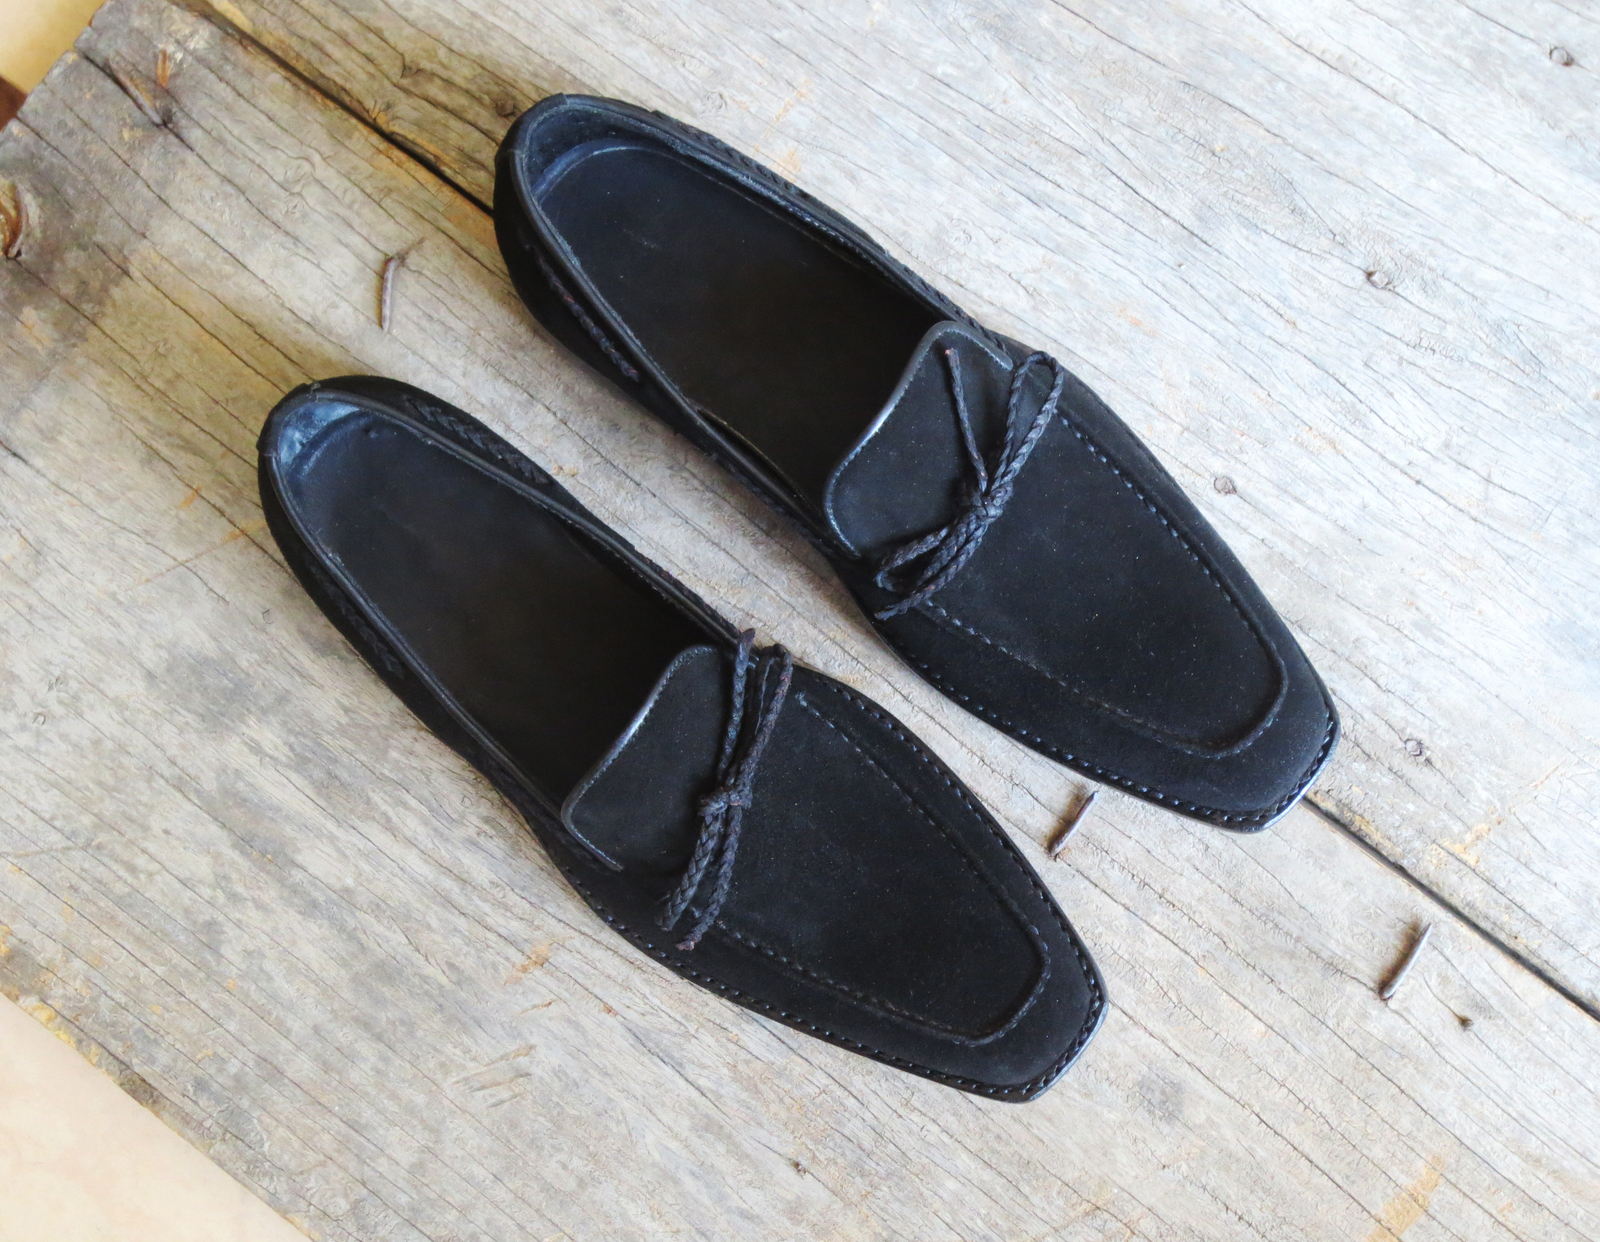 Superior Apron Toe Black Color Leather Tassel Men Loafer Slip Ons Handmade Shoes